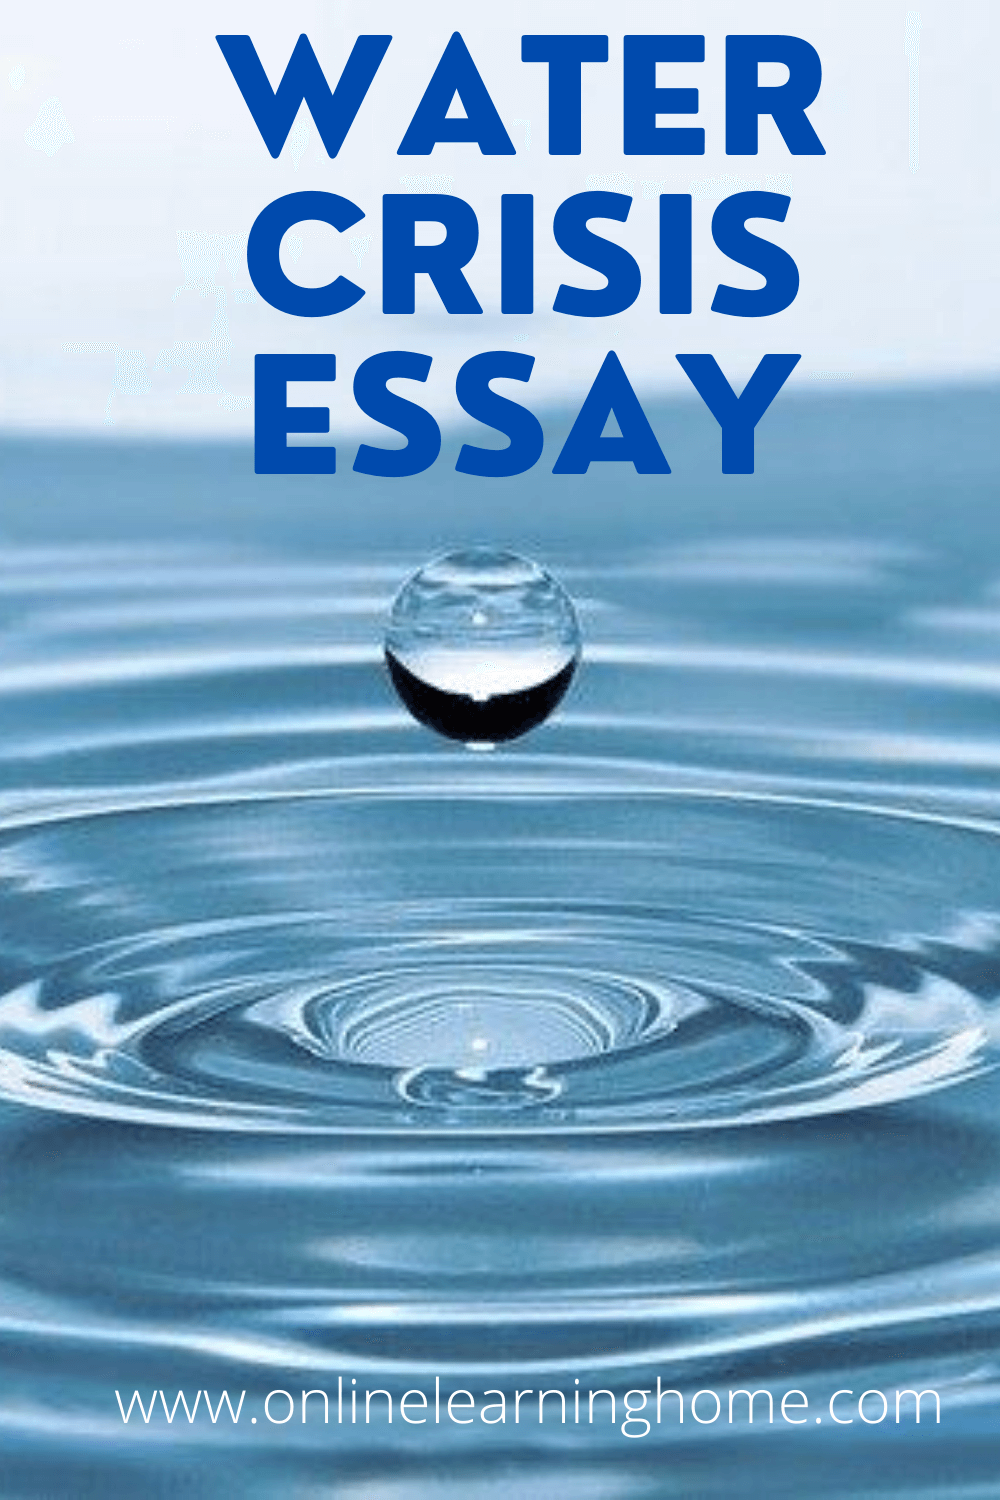 Water Crisi Essay Online Learning And Energy In Pakistan Pdf Outline Cs